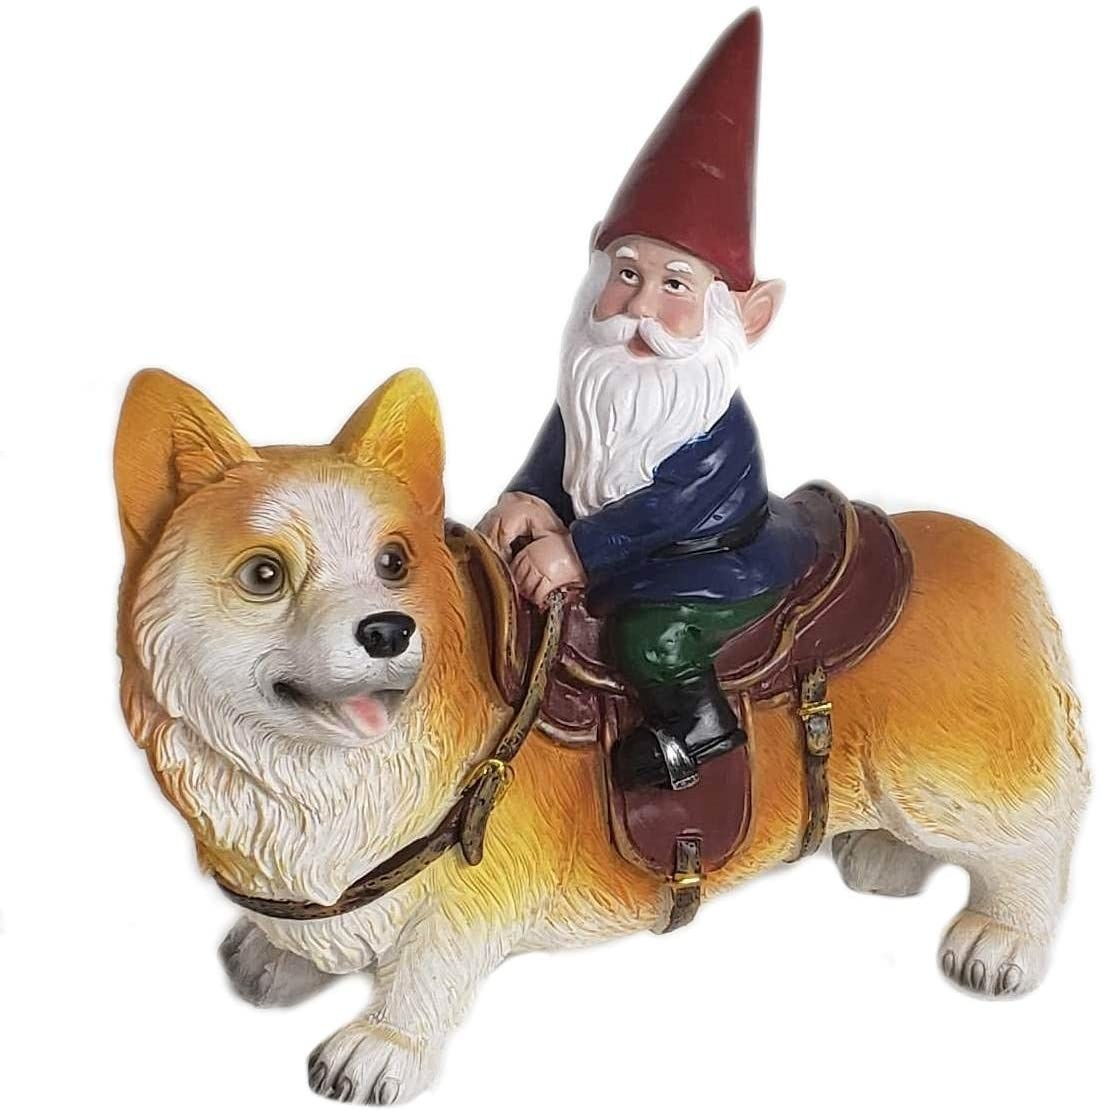 statue of a corgi with a horse-like saddle on it and a garden gnome riding it